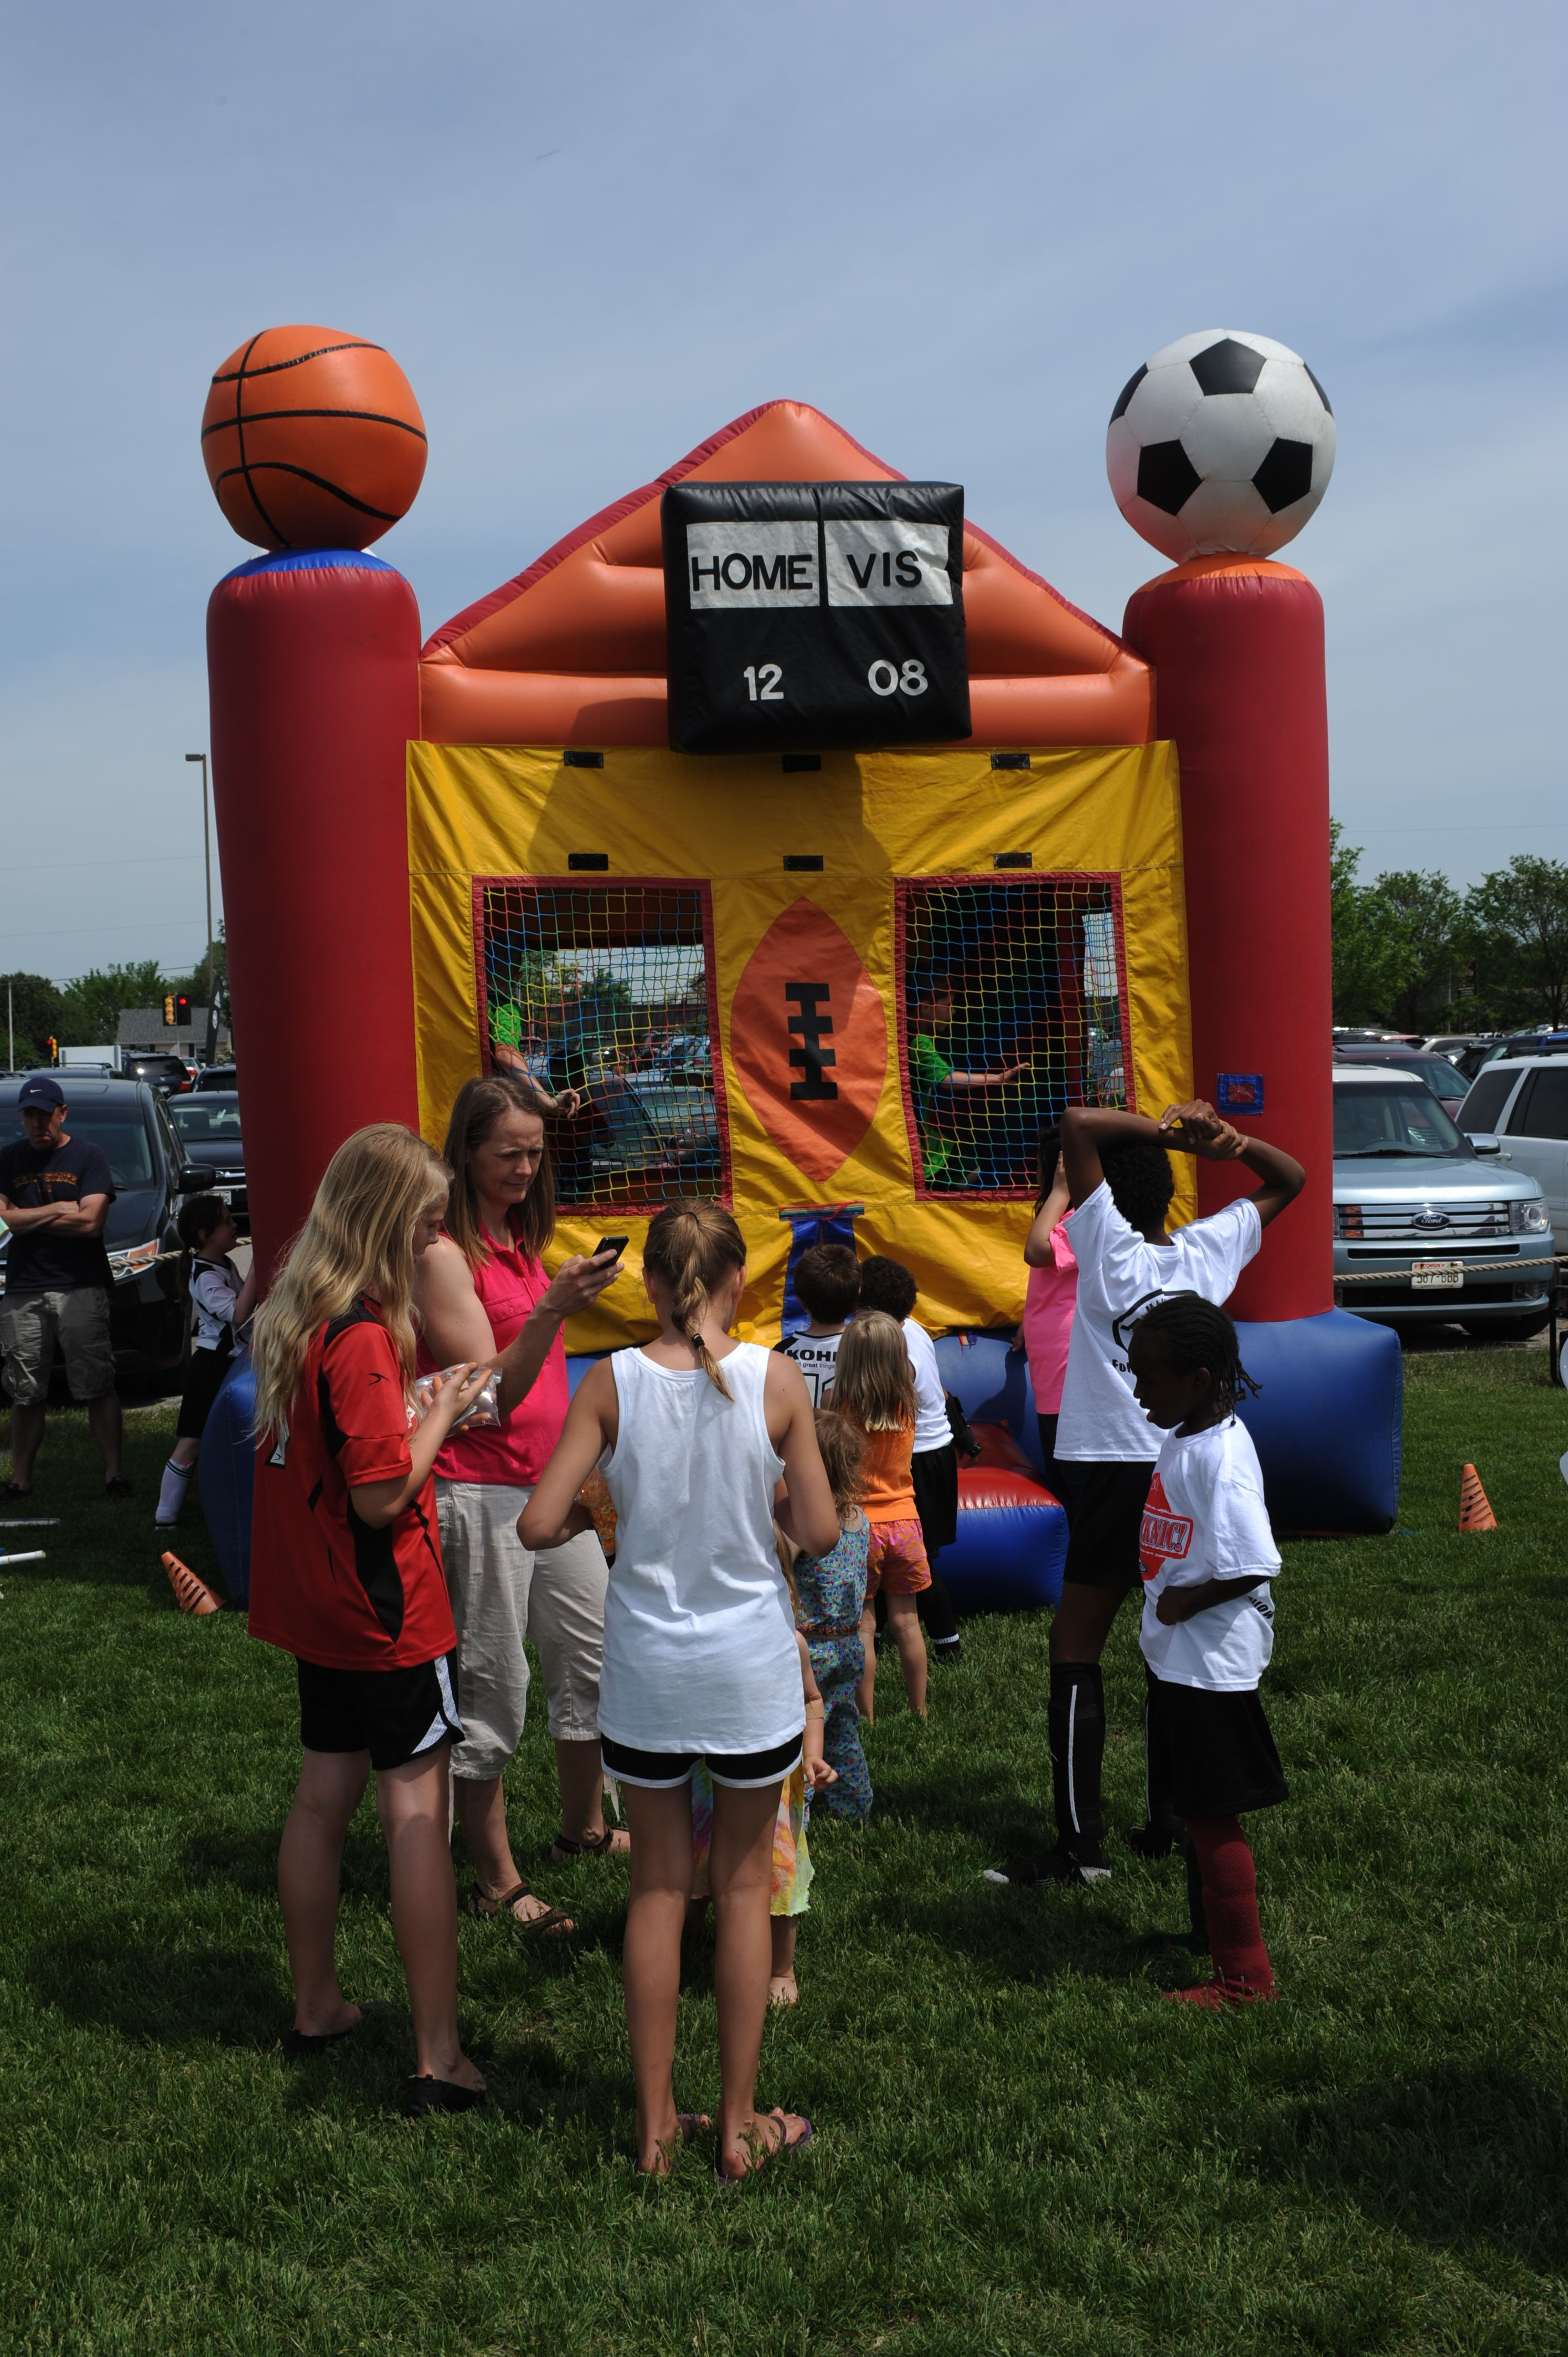 Bouncy House!!! Having fun at our 2014 Kicknic! Bouncy